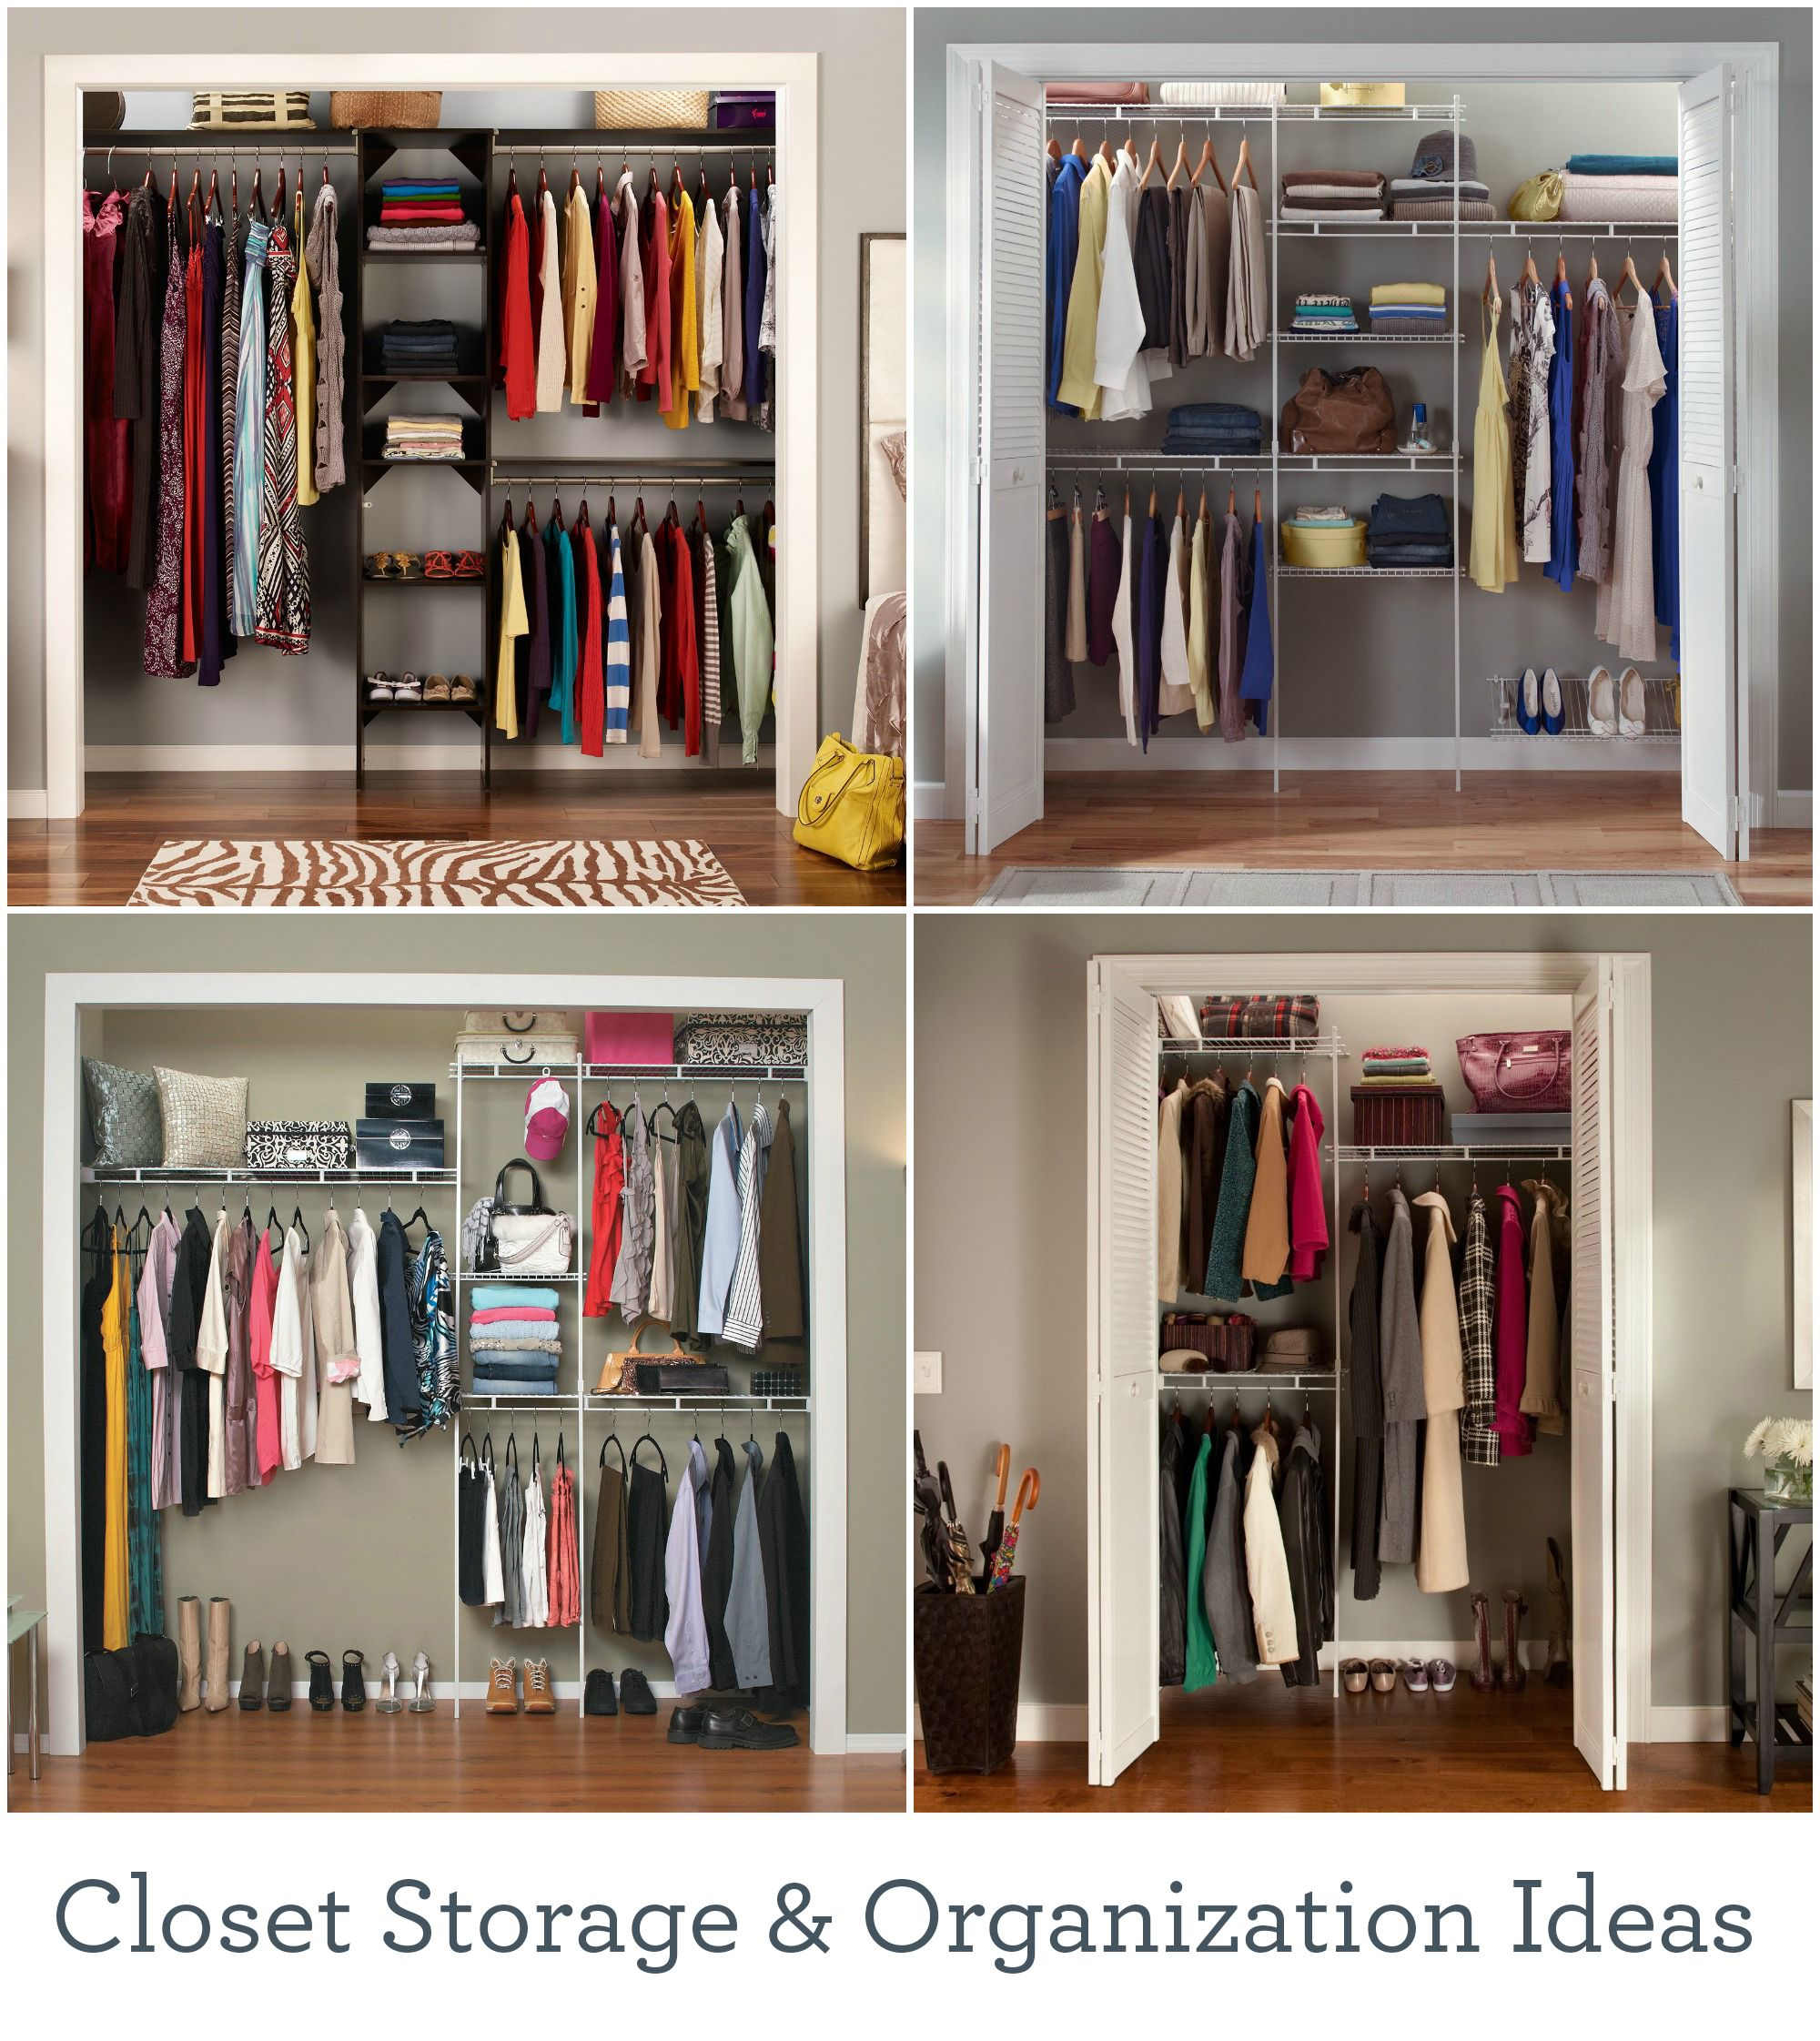 Make the most of your closet space with these storage solutions and